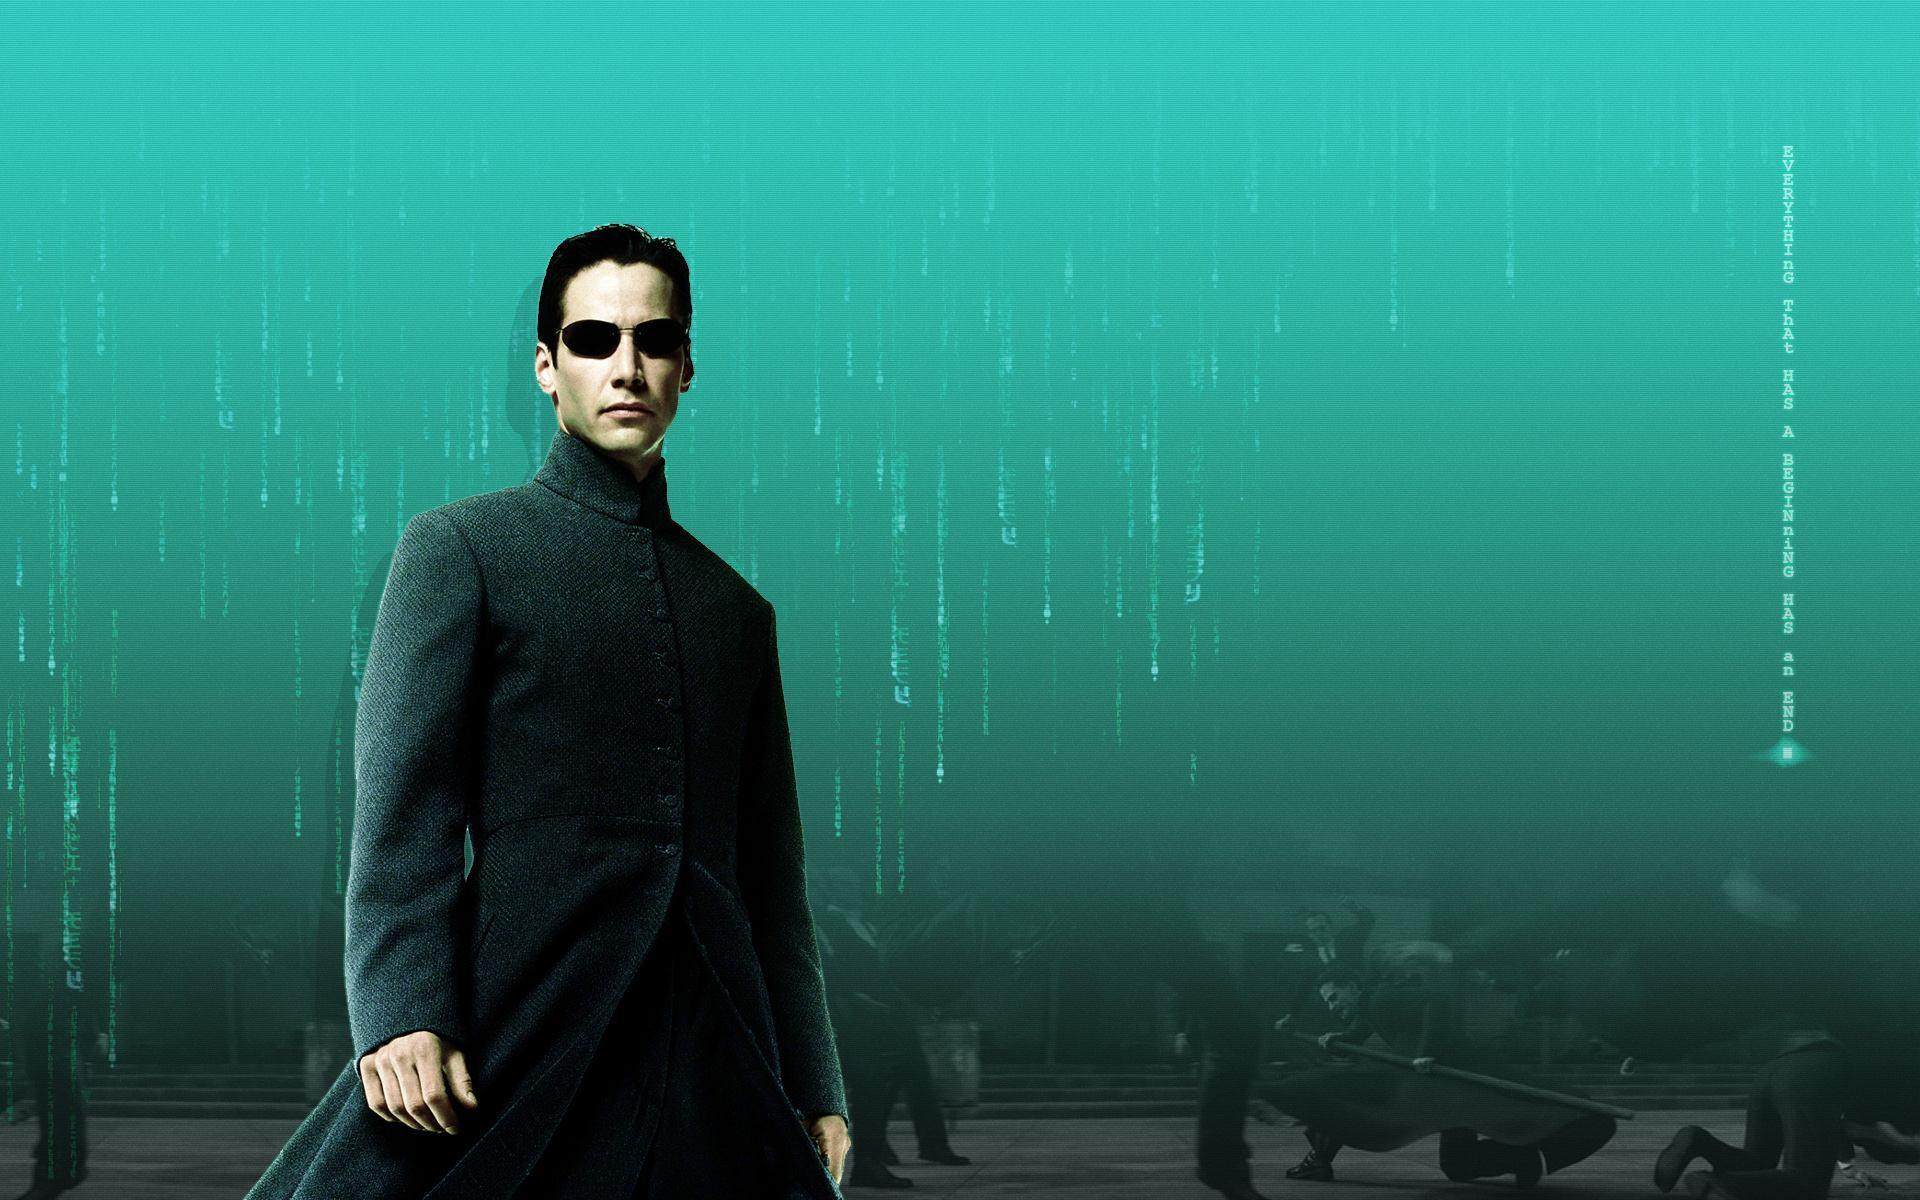 Matrix - HD Movie Wallpapers - Free Download